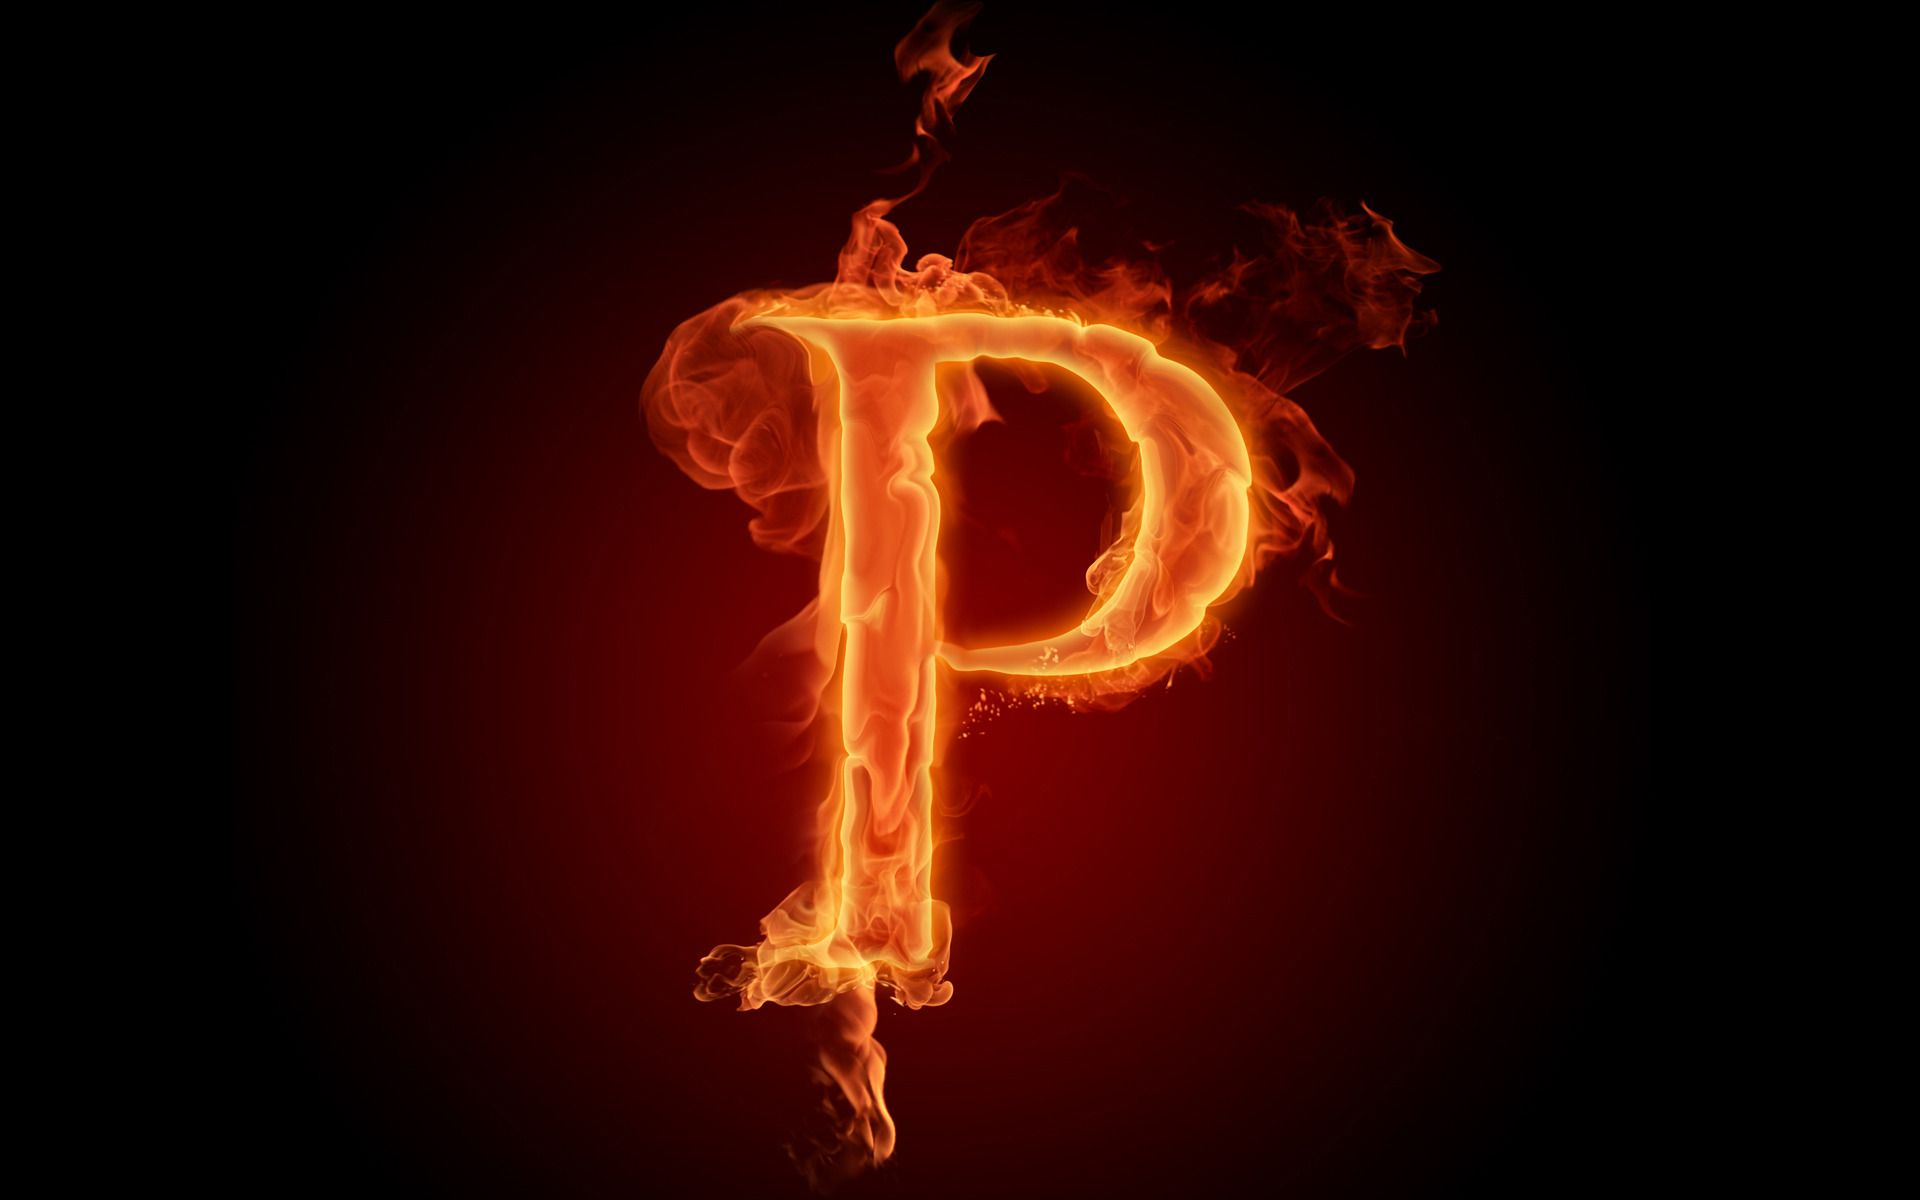 P Wallpaper Download